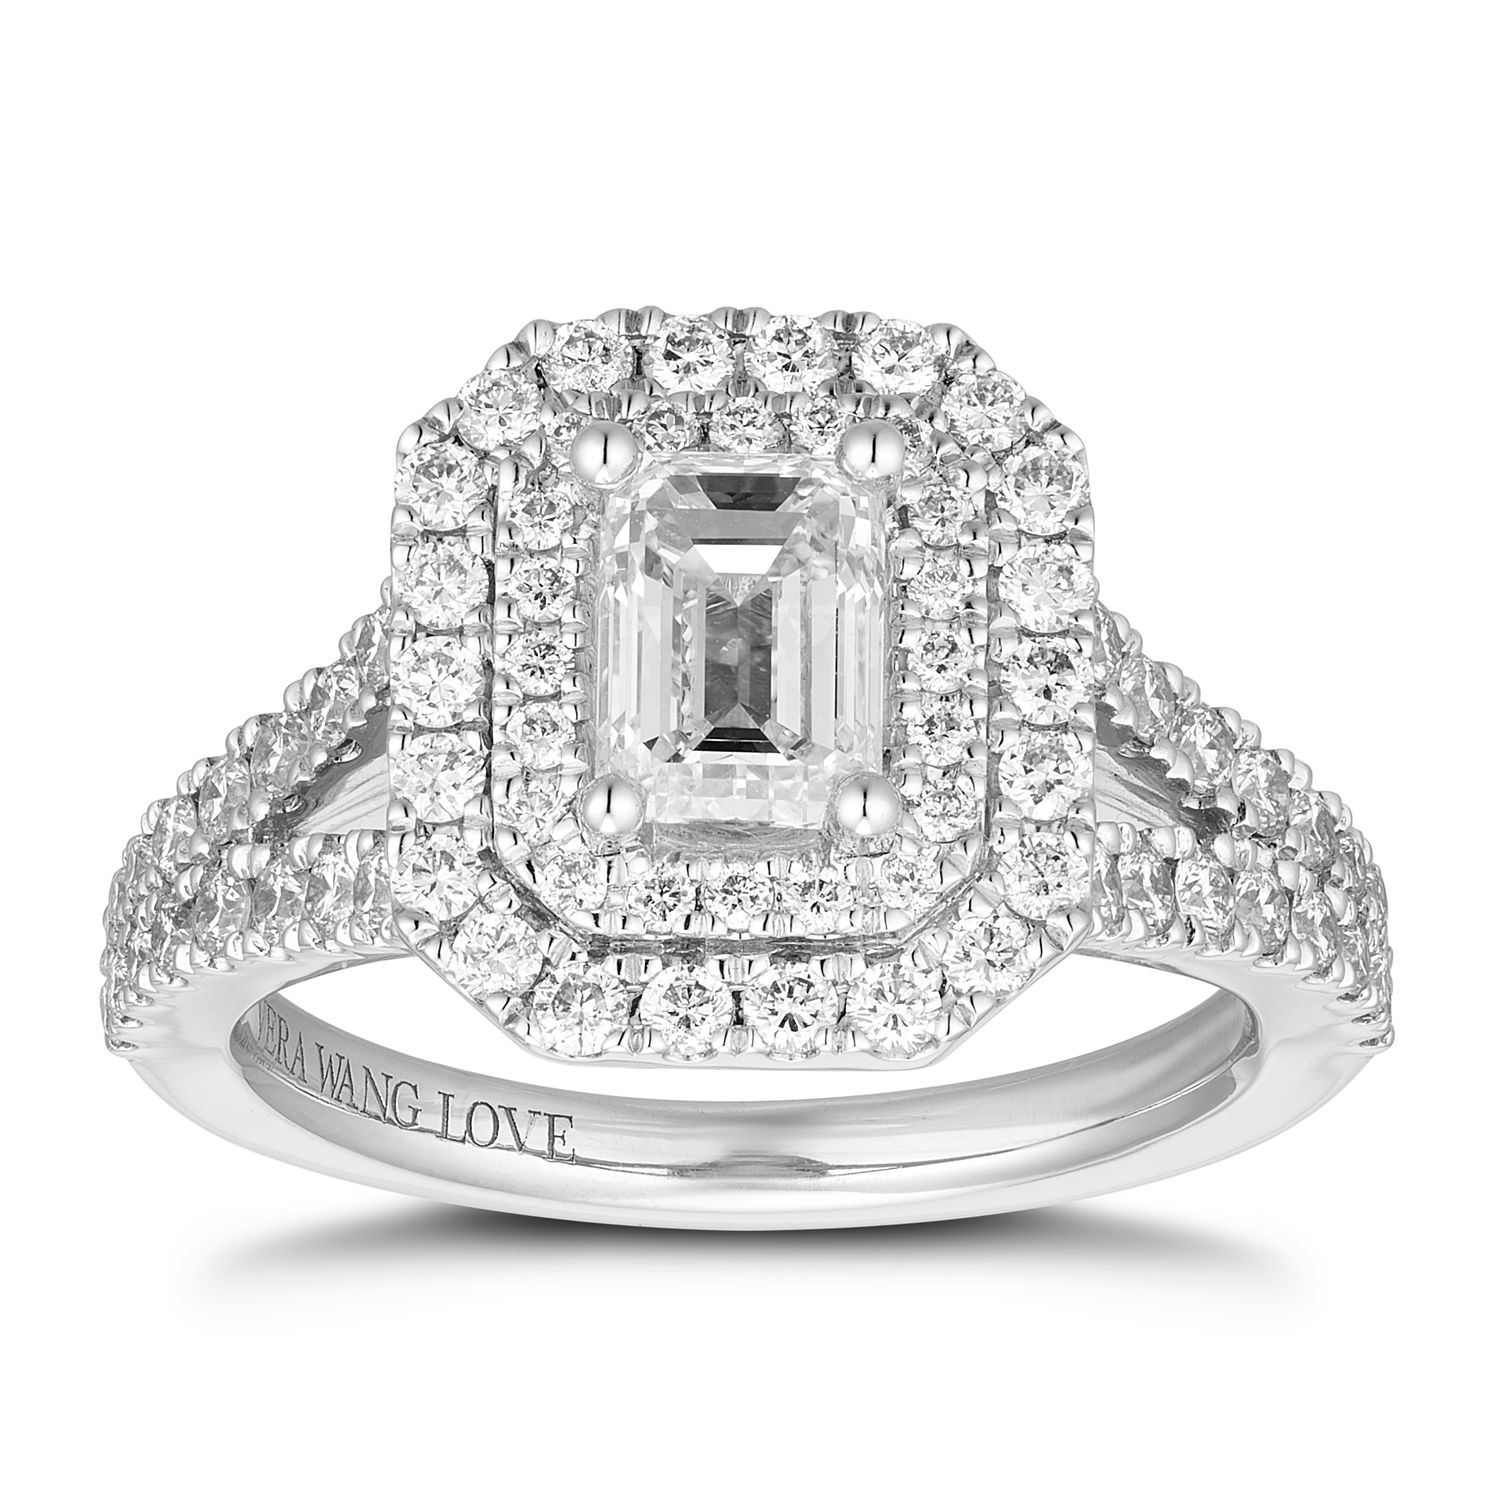 Vera Wang 18ct White Gold 1.95ct Total Diamond Ring - Product number 1113003